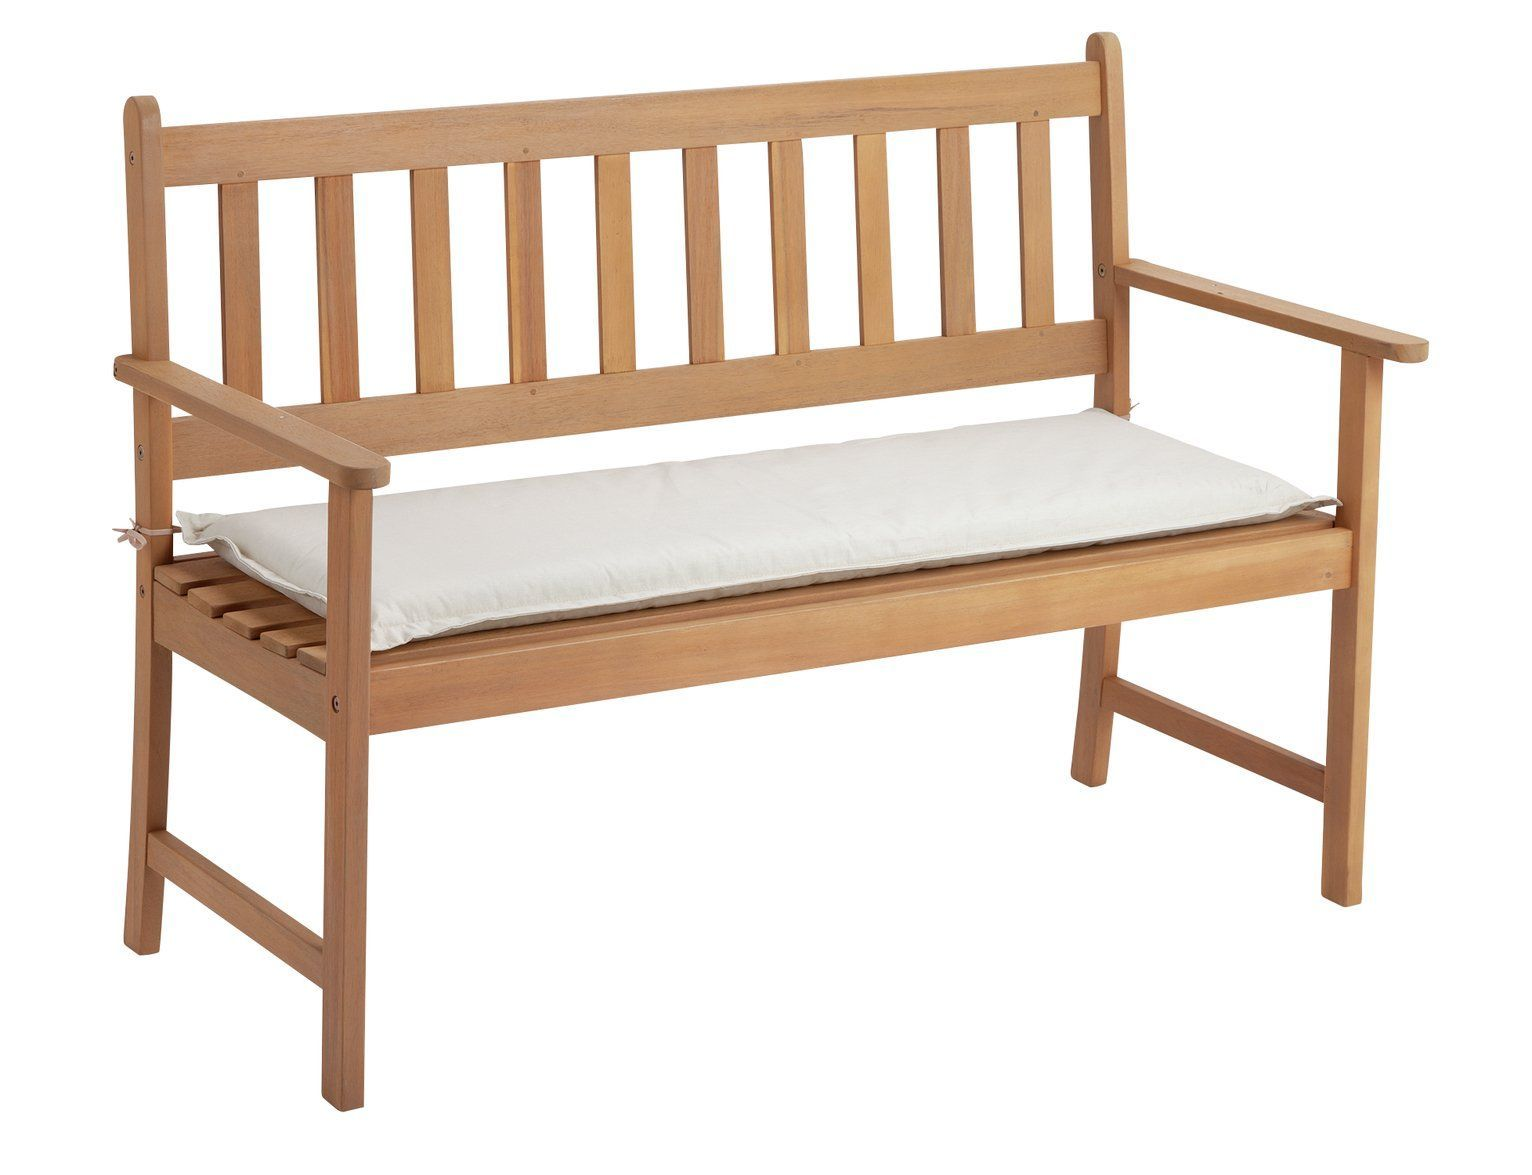 Argos Home Garden Bench Cushion Cream, Argos Bench